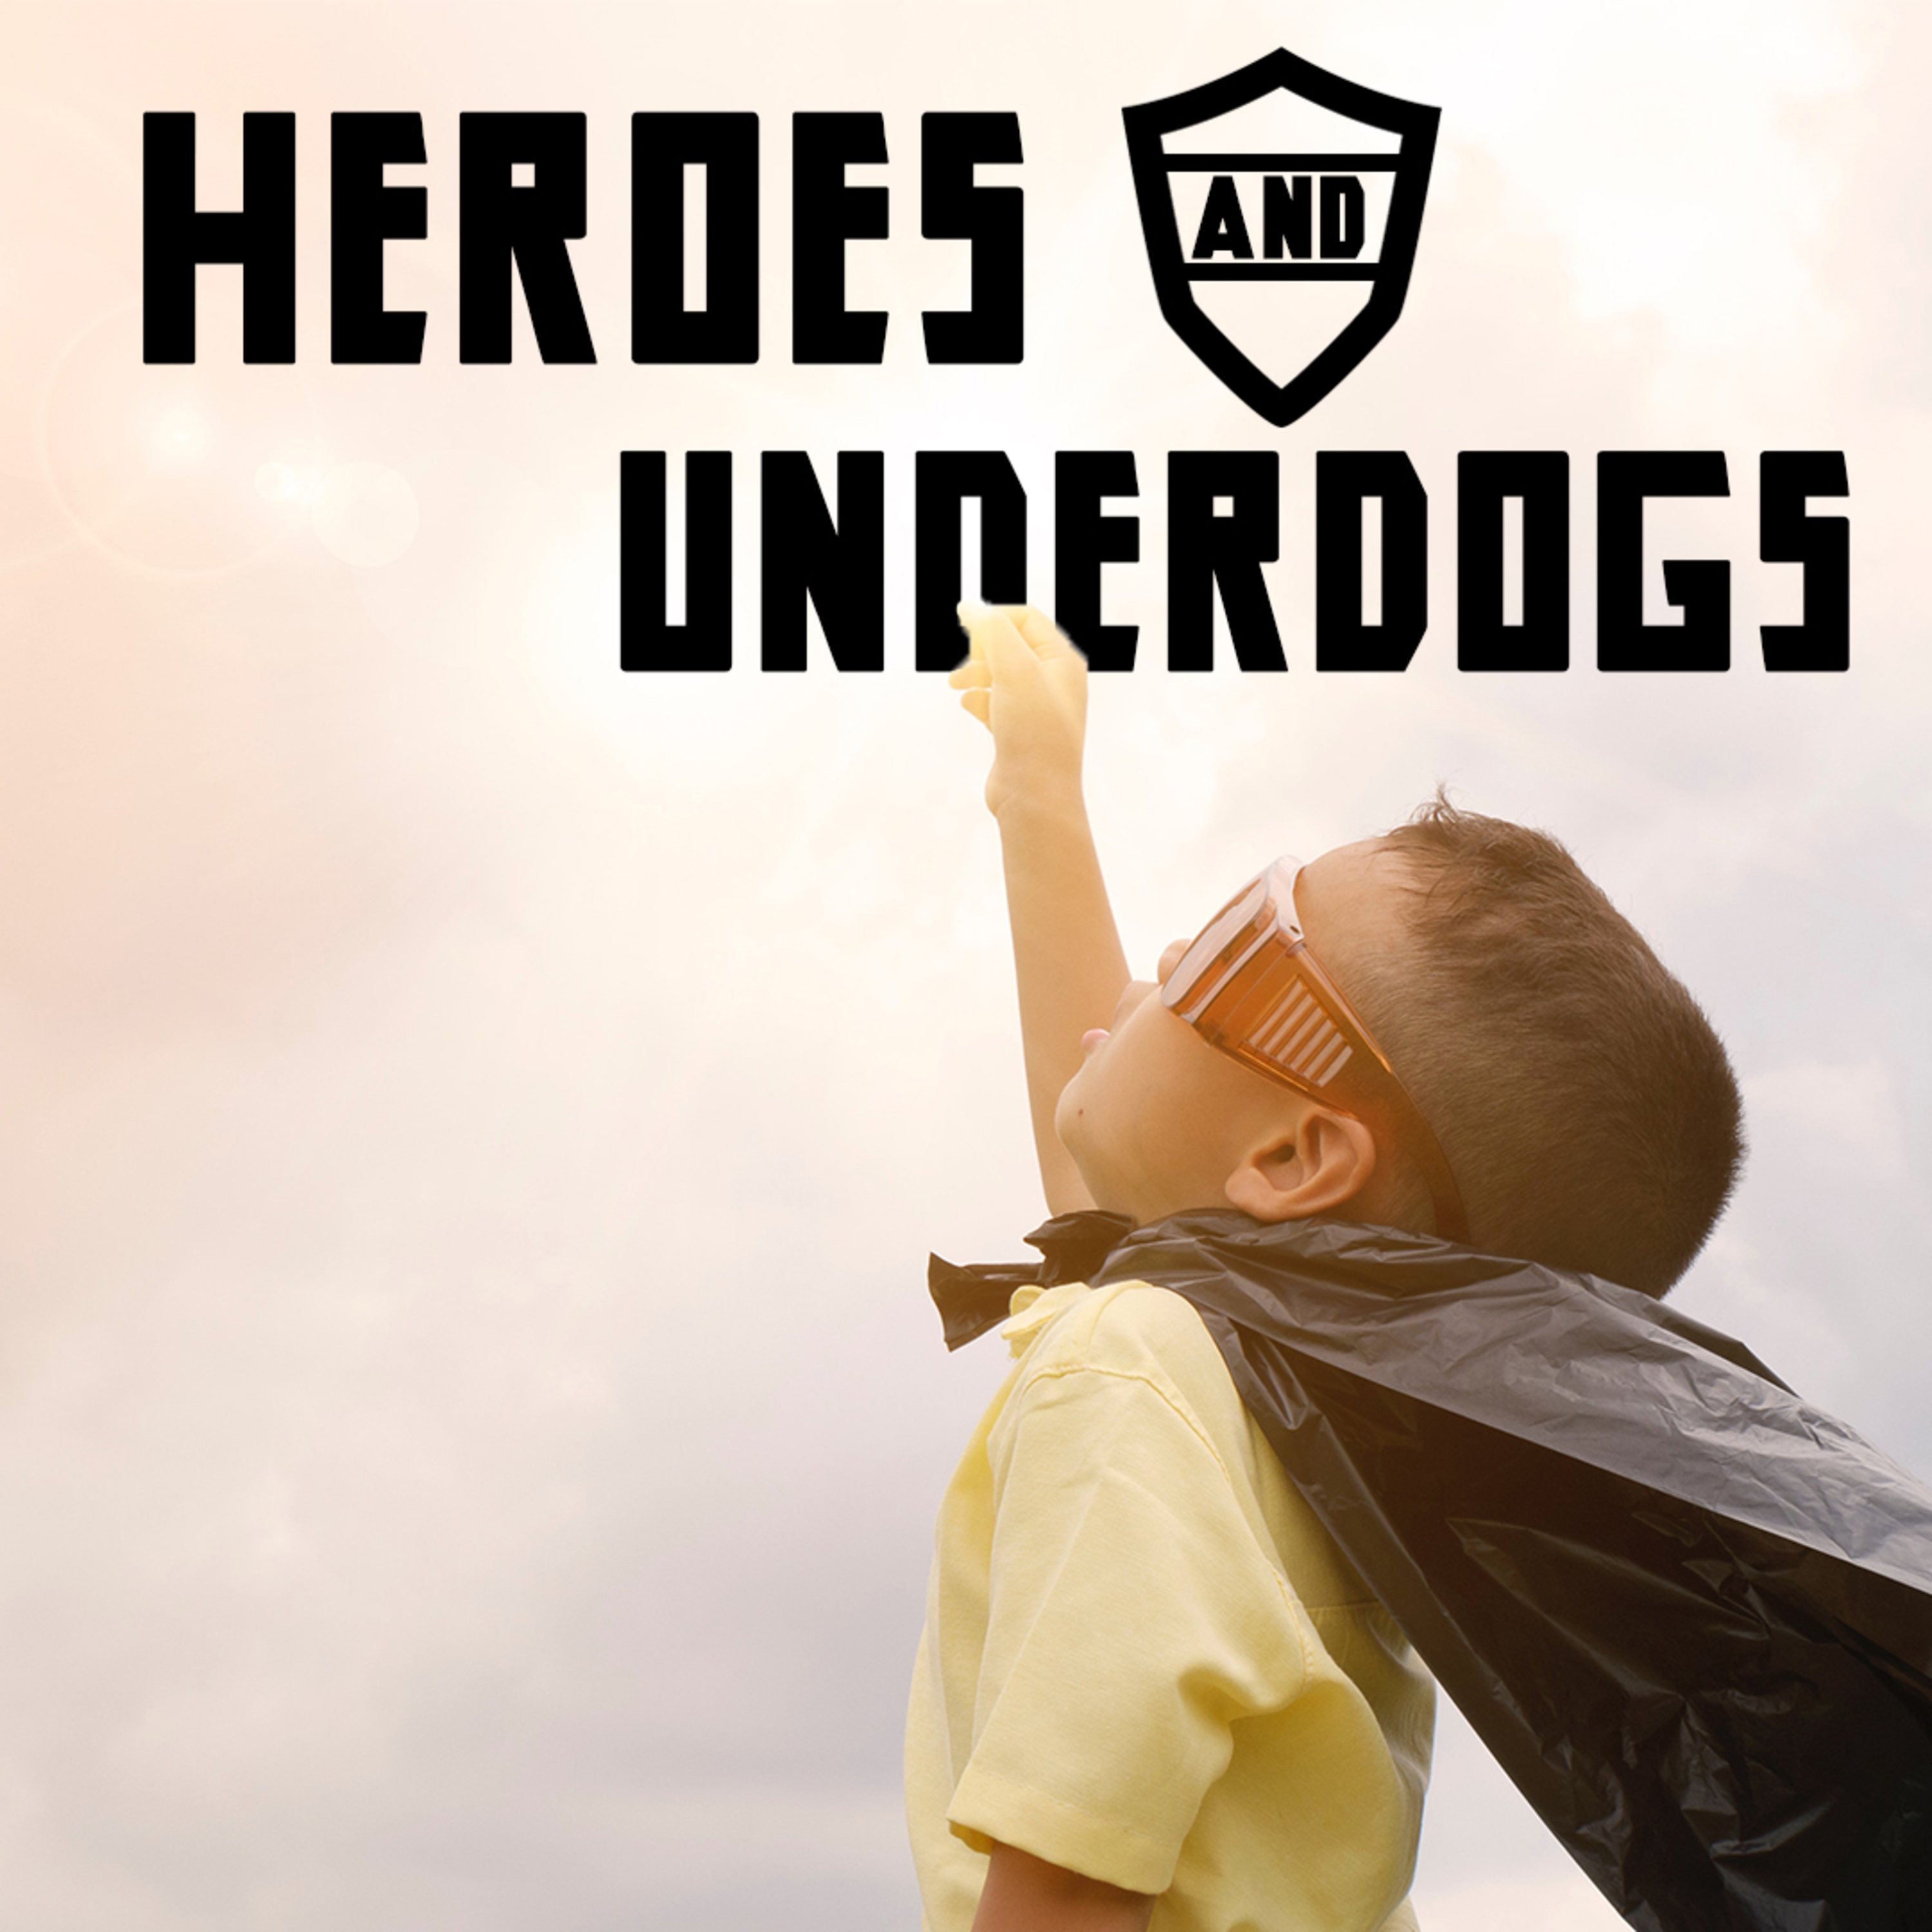 Heroes and Underdogs #25